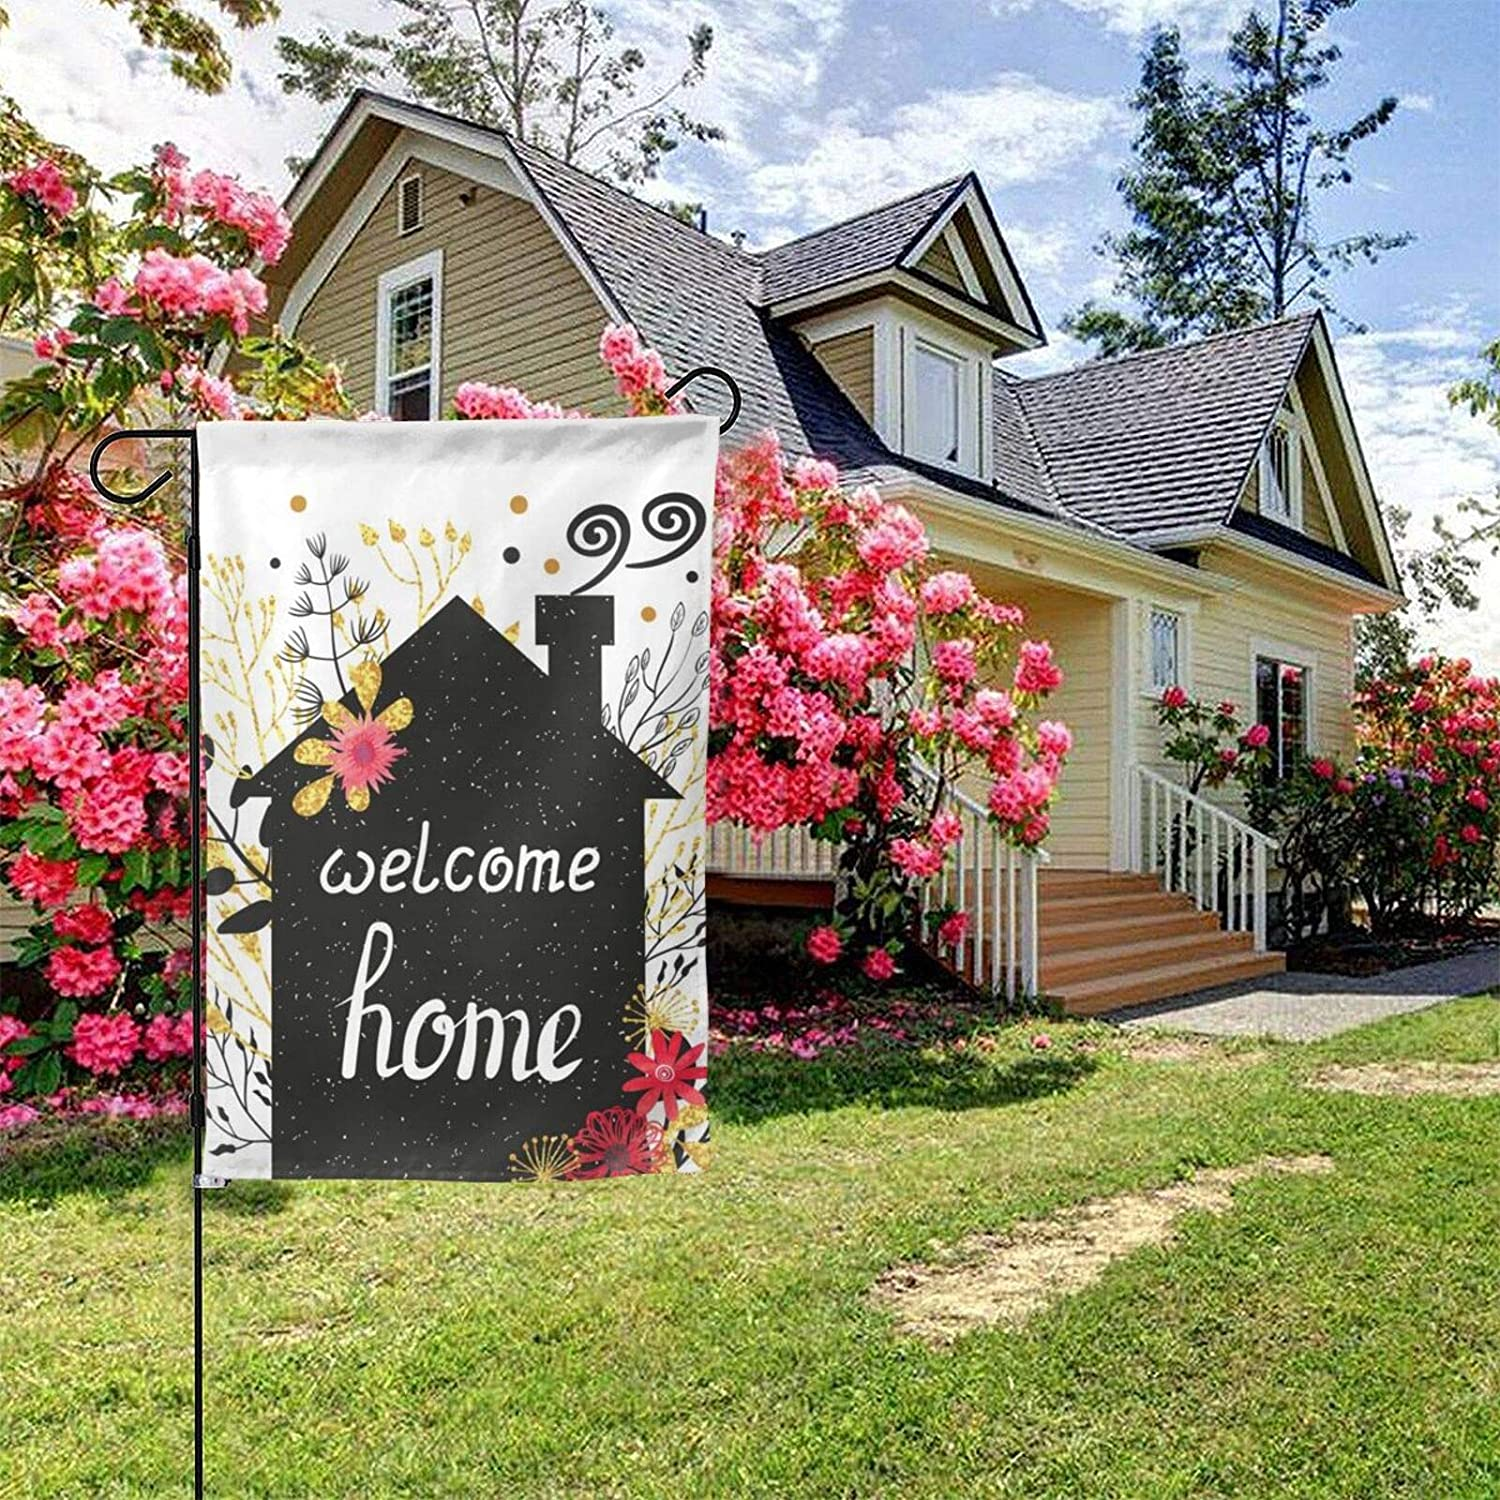 Welcome Home Garden Flags 12.5x18 inches Simple Flower Cottage Spring House Flags Home Outside Decoration Banners Courtyard